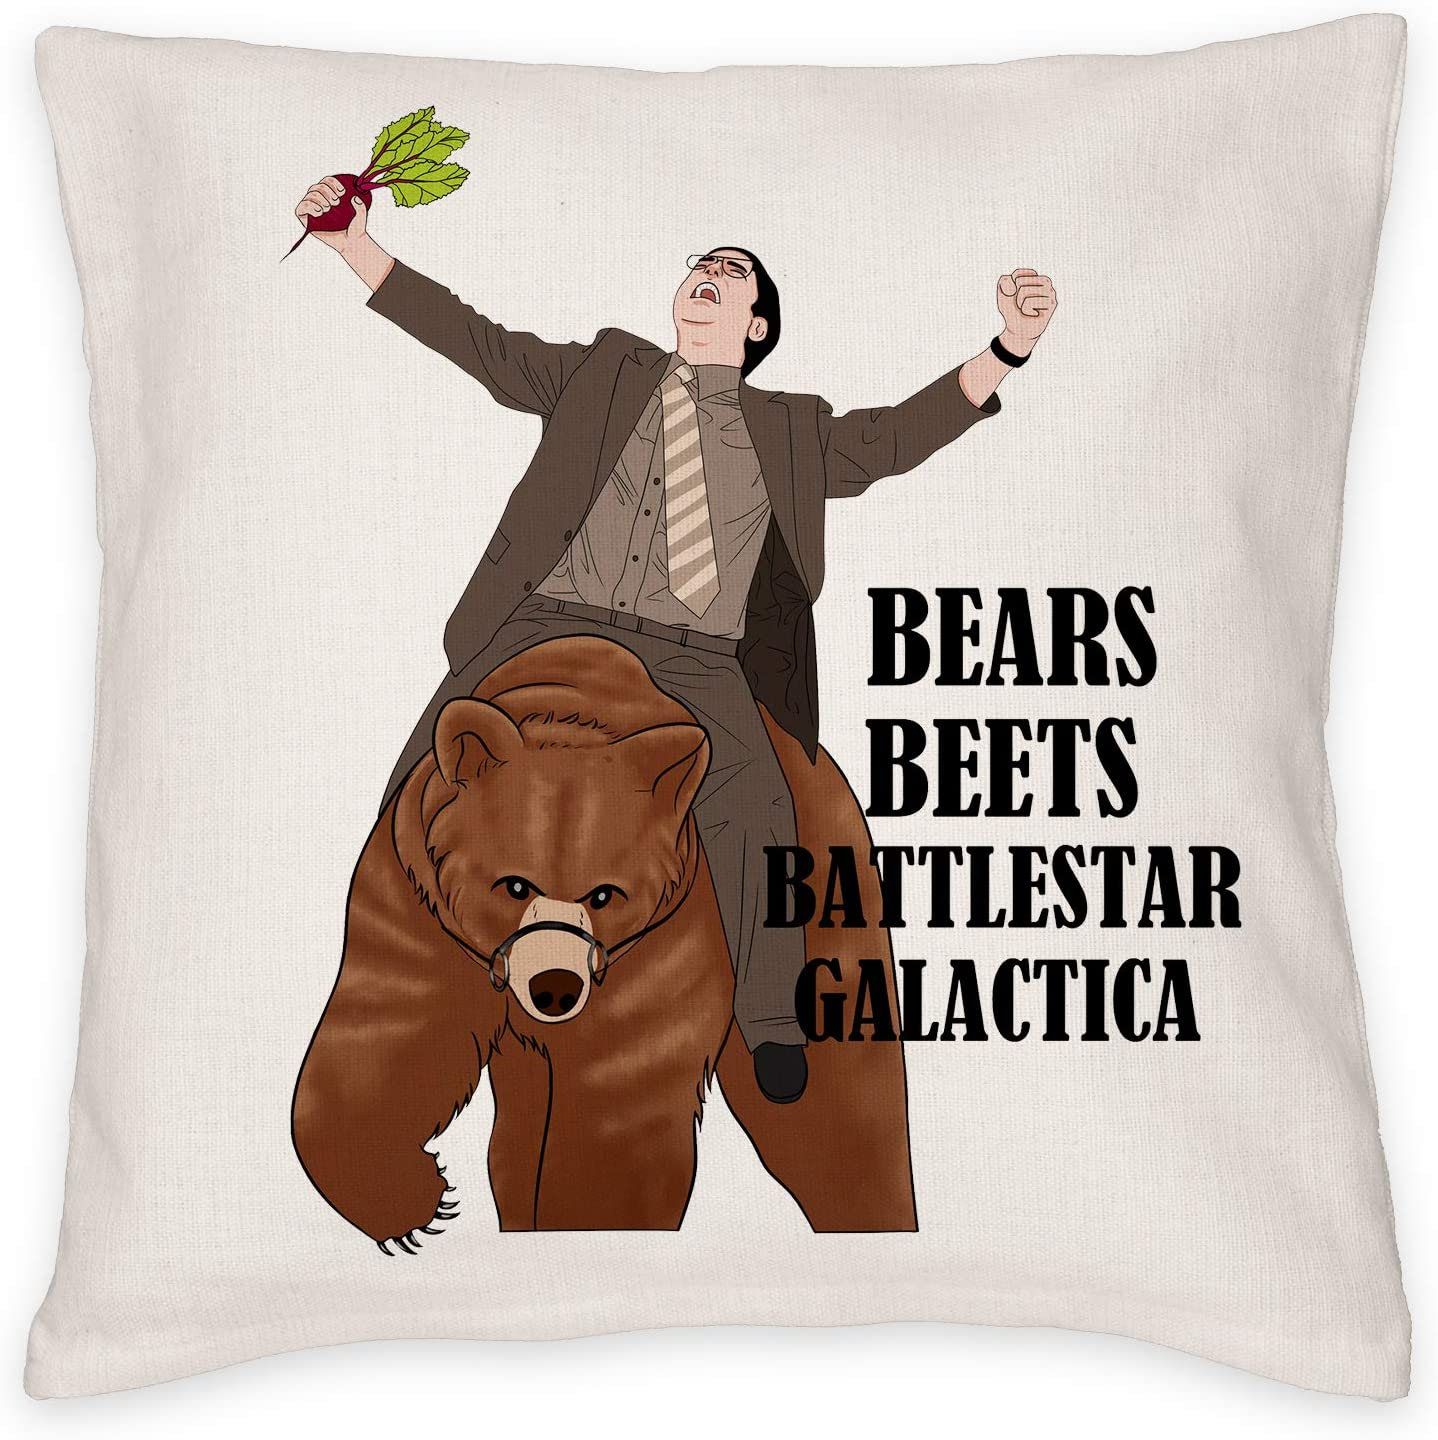 MTWXH Throw Pillow Case, The Office Bears Beets Battlestar Galactica 18x18 Inch Decorate Pillow Cover, The Office Merchandise Cushion Cover for Home Decor, Decoration Gifts for TV Show Fans